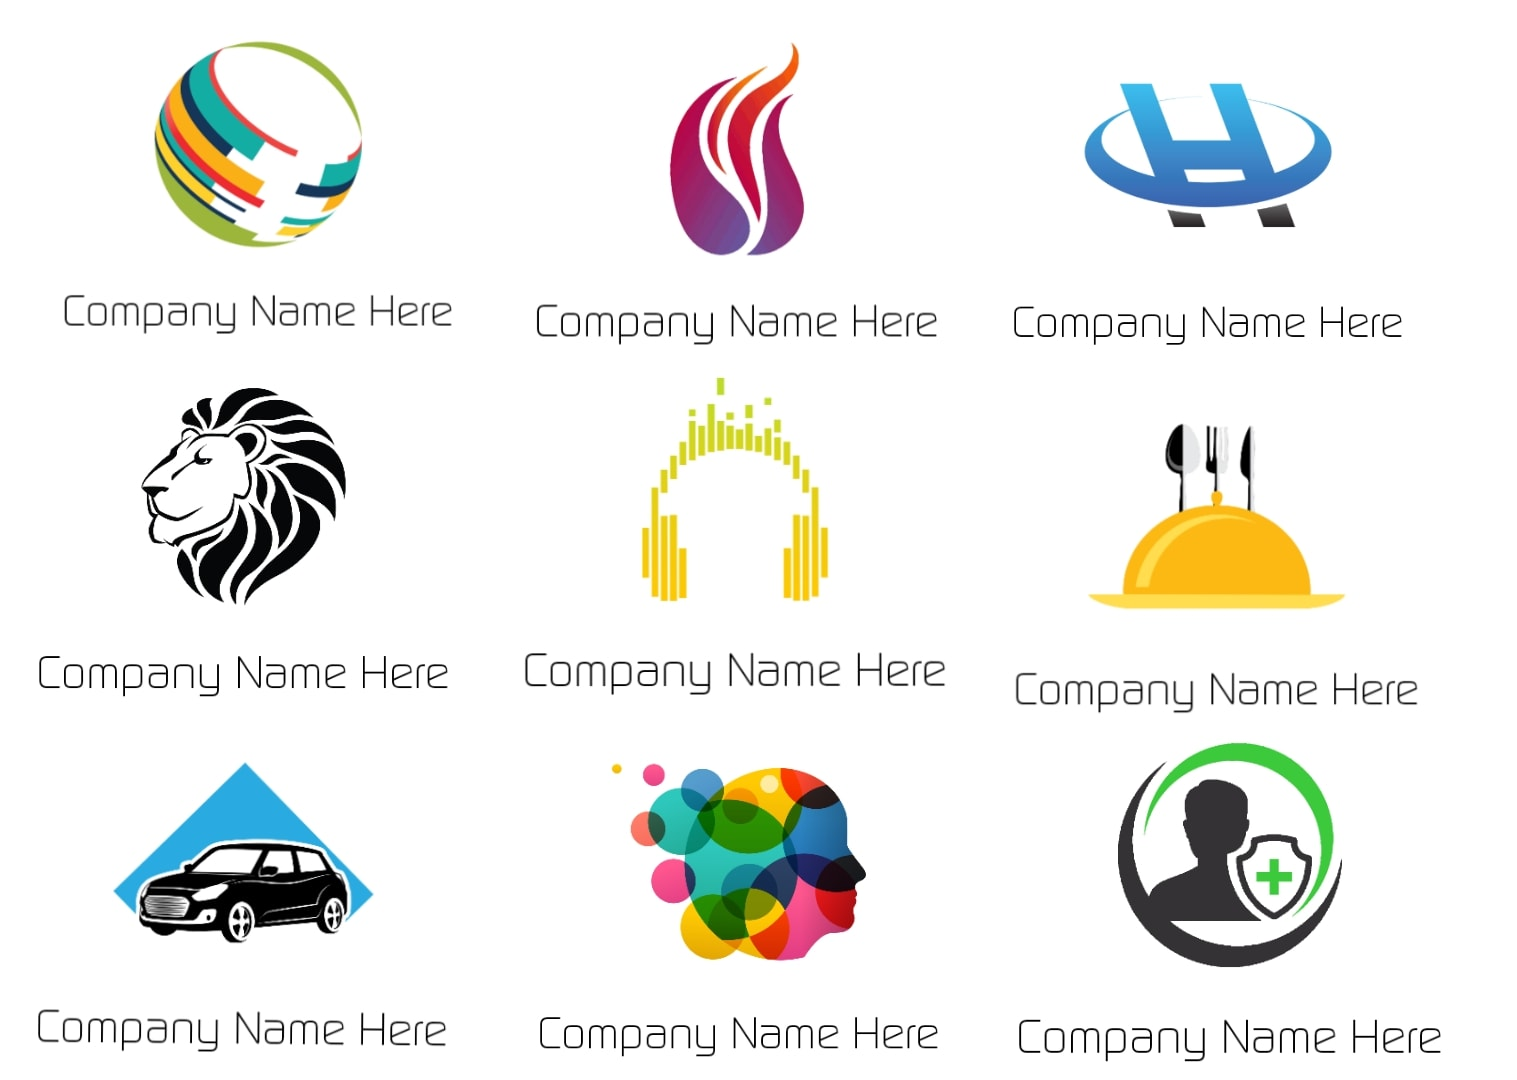 I will design simple,  face and iconic logo for your business